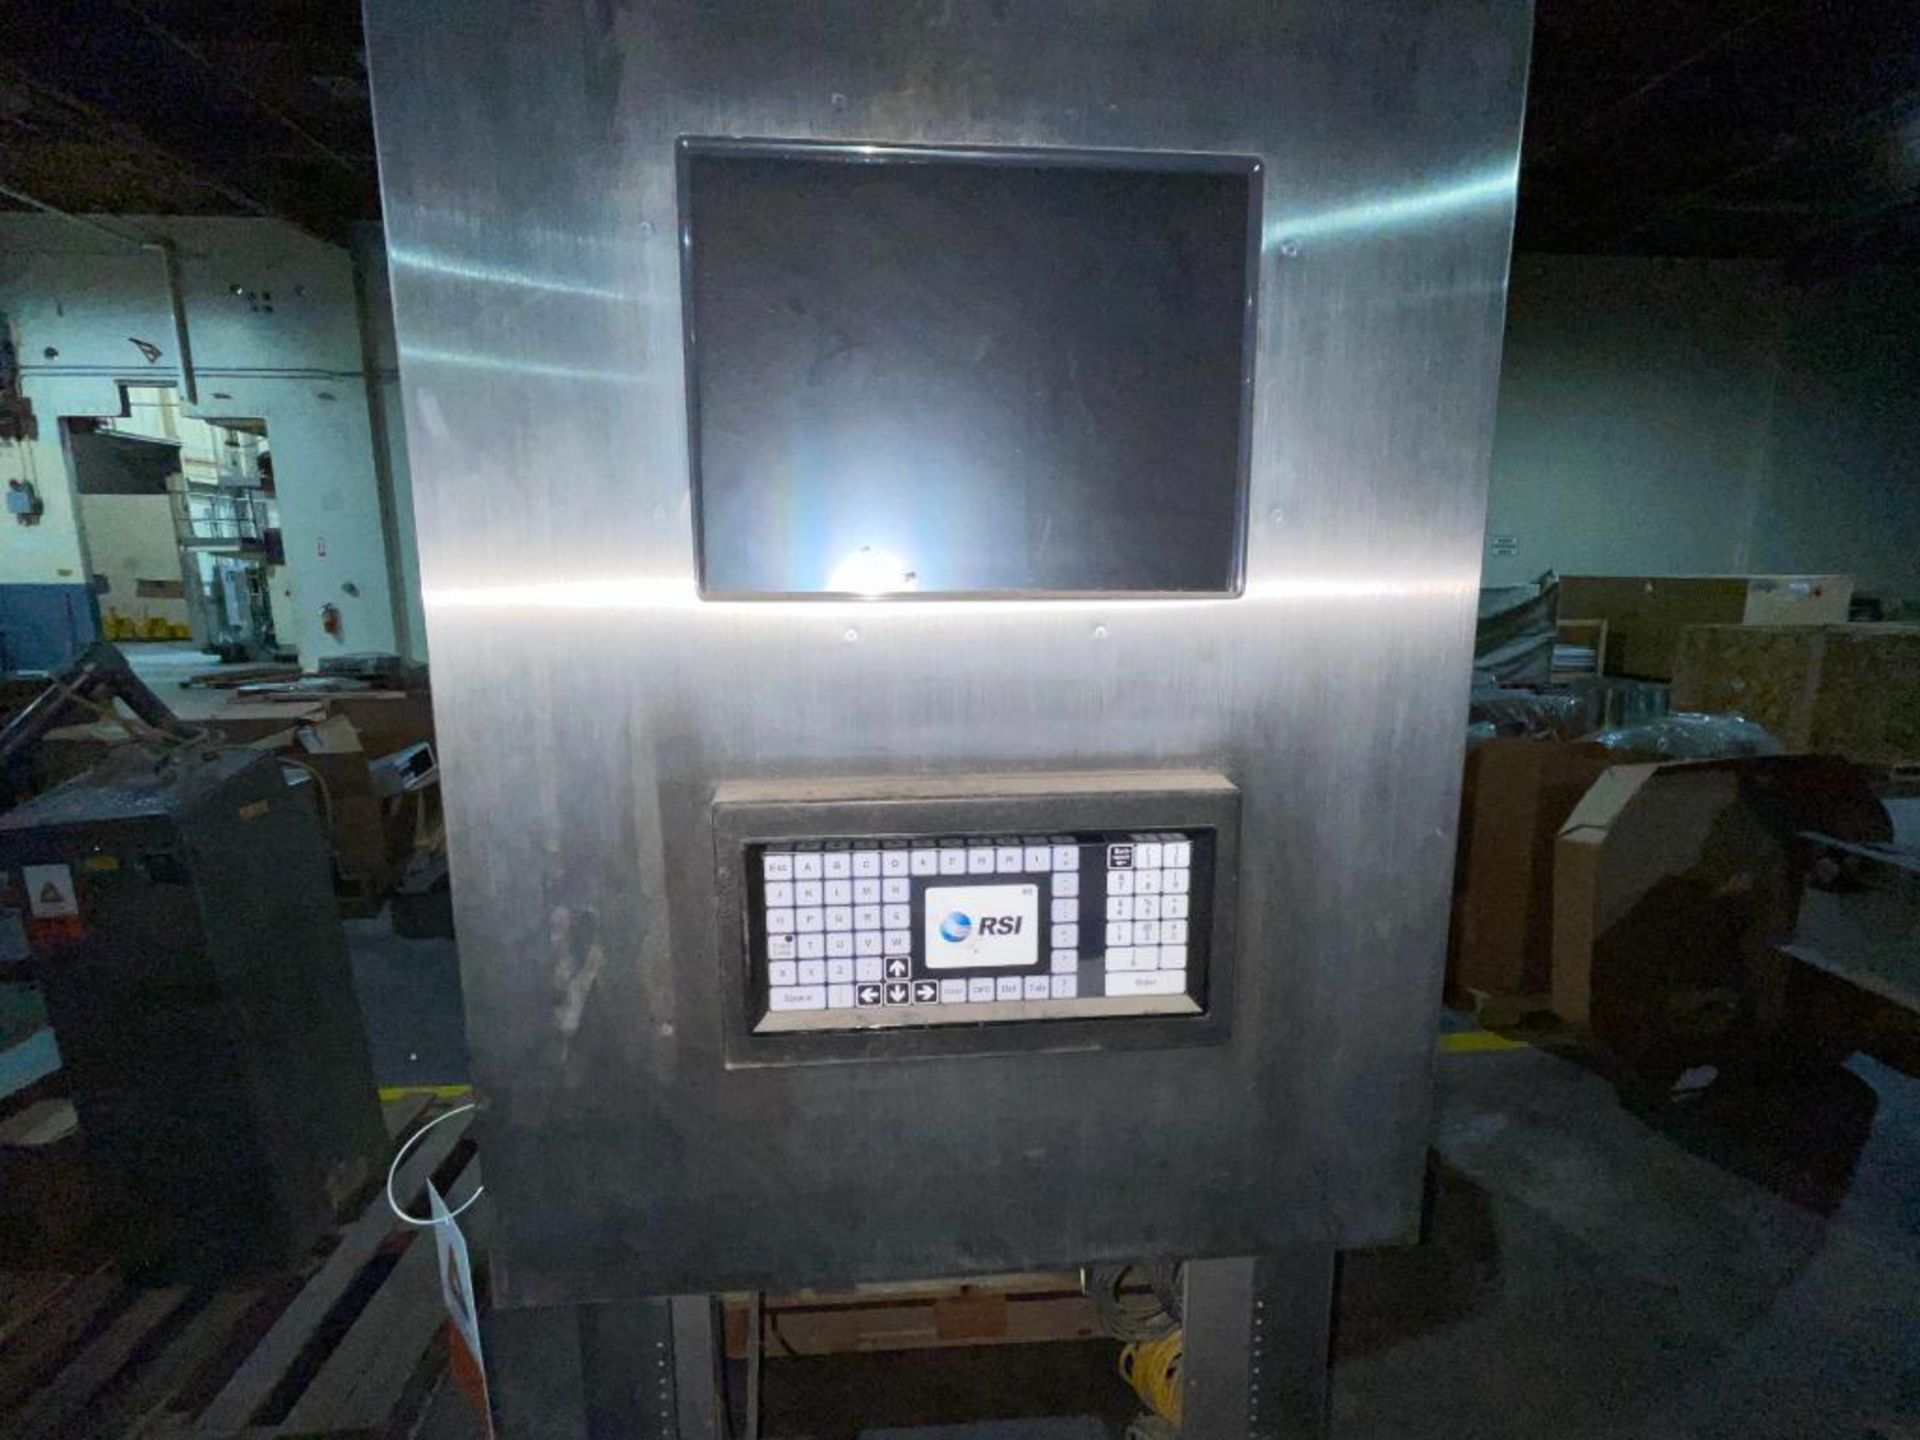 stainless steel pedestal control panel - Image 2 of 20